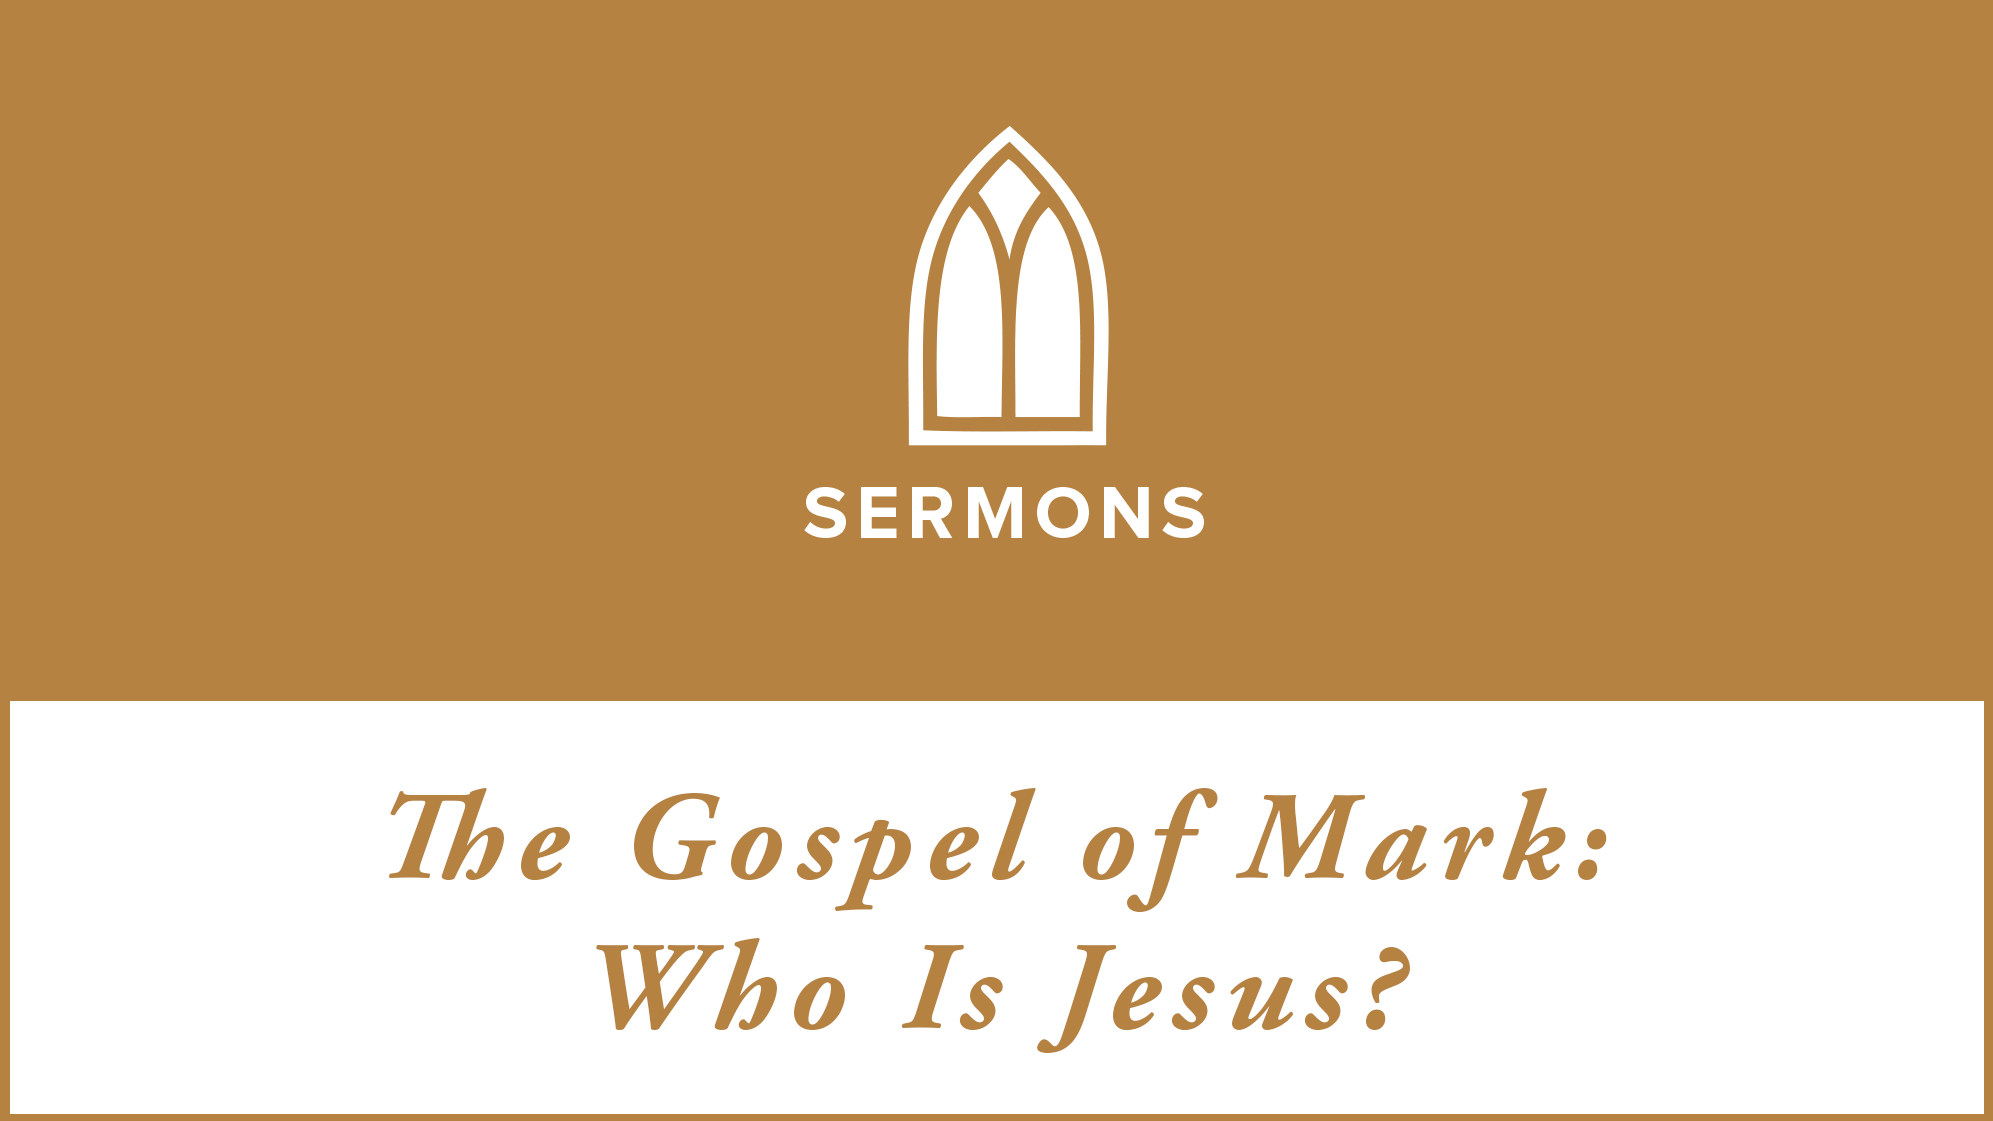 Mark-Who is jesus-16x9.png